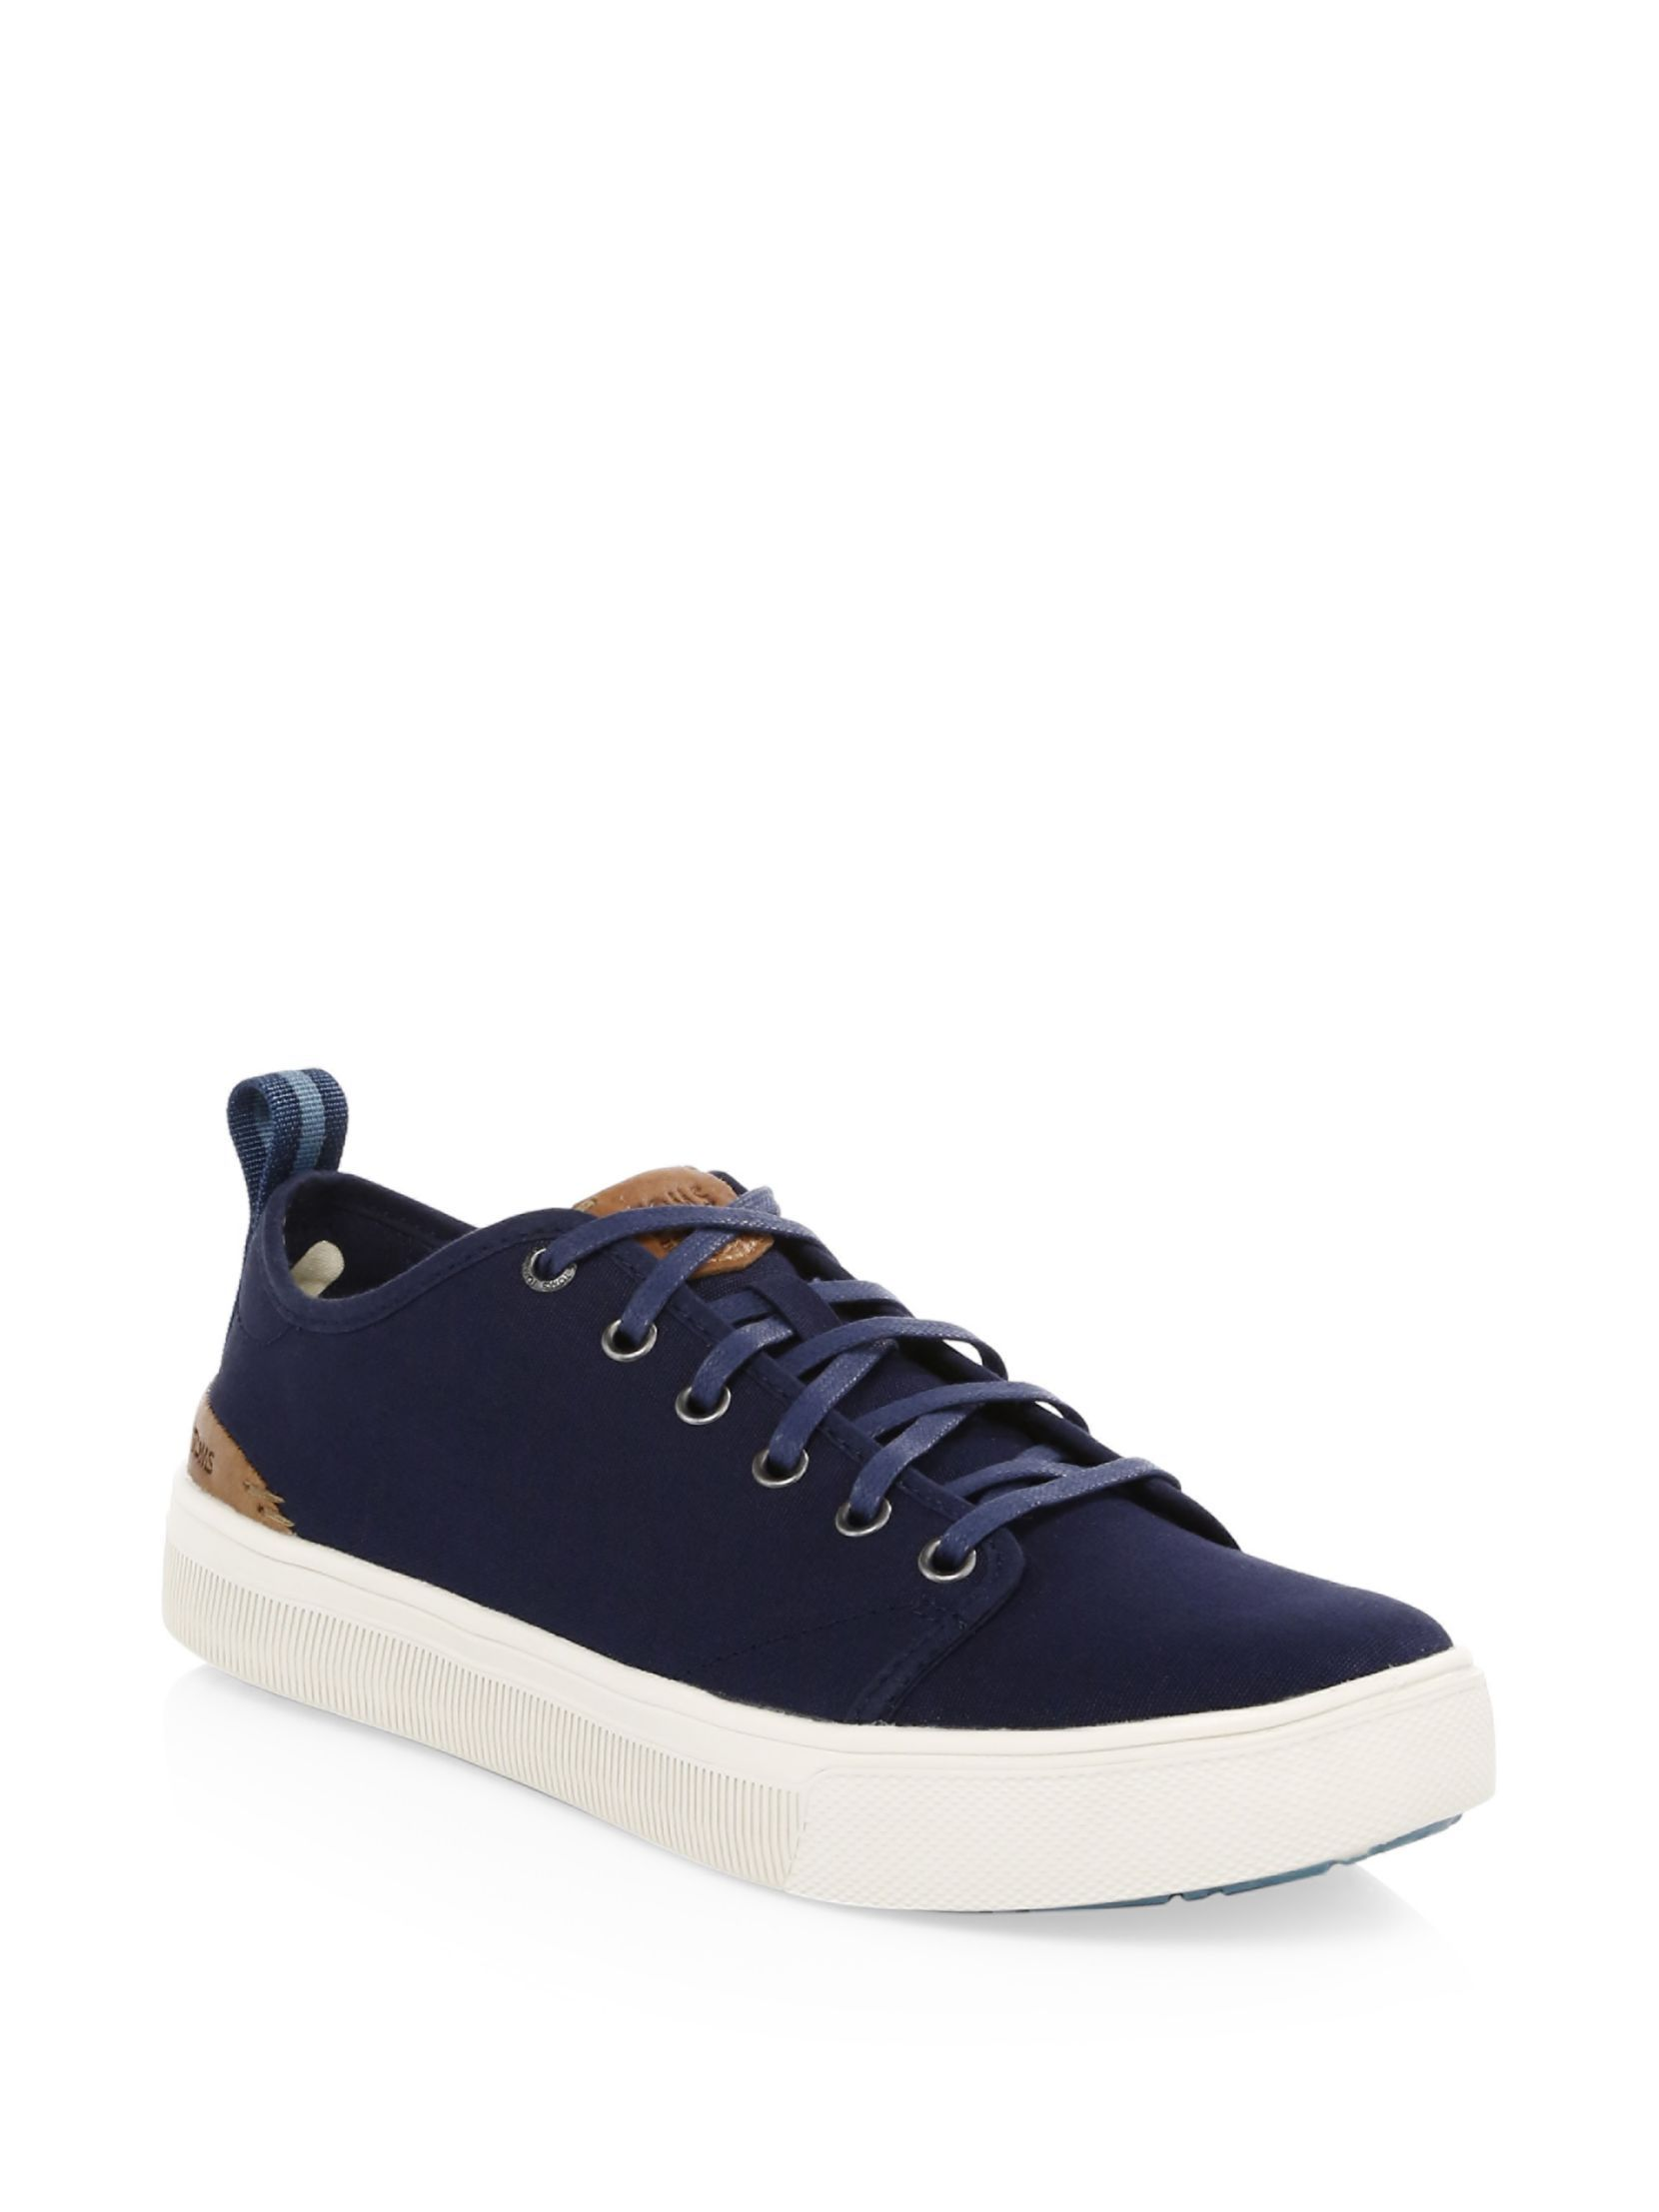 xuVXFucWR6 Travel Lite Low Sneakers NEgK9ok2H